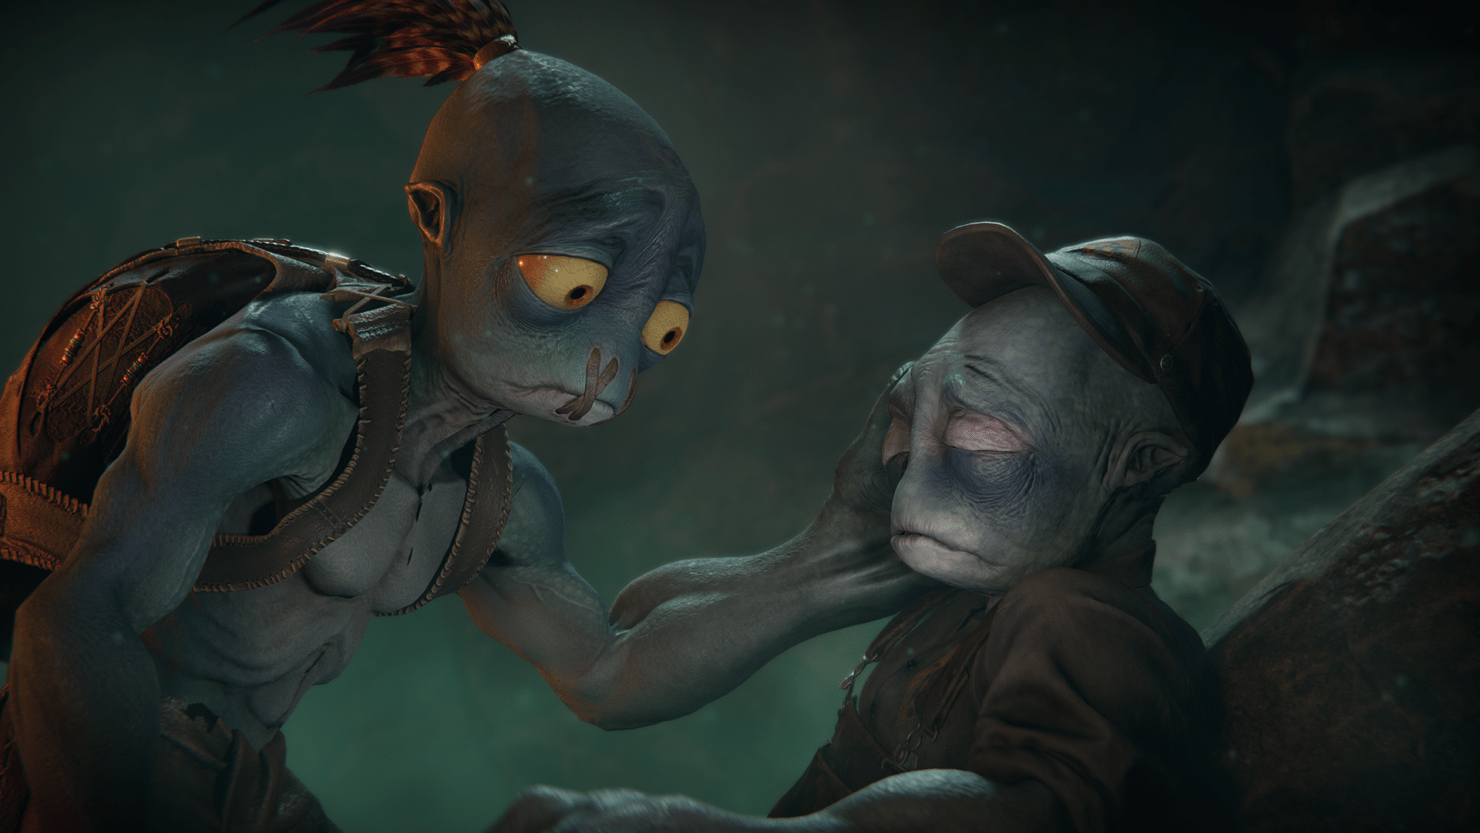 Oddworld: Soulstorm PlayStation 5 Reveal Trailer With Stunning Visuals And Advanced 3D Audio